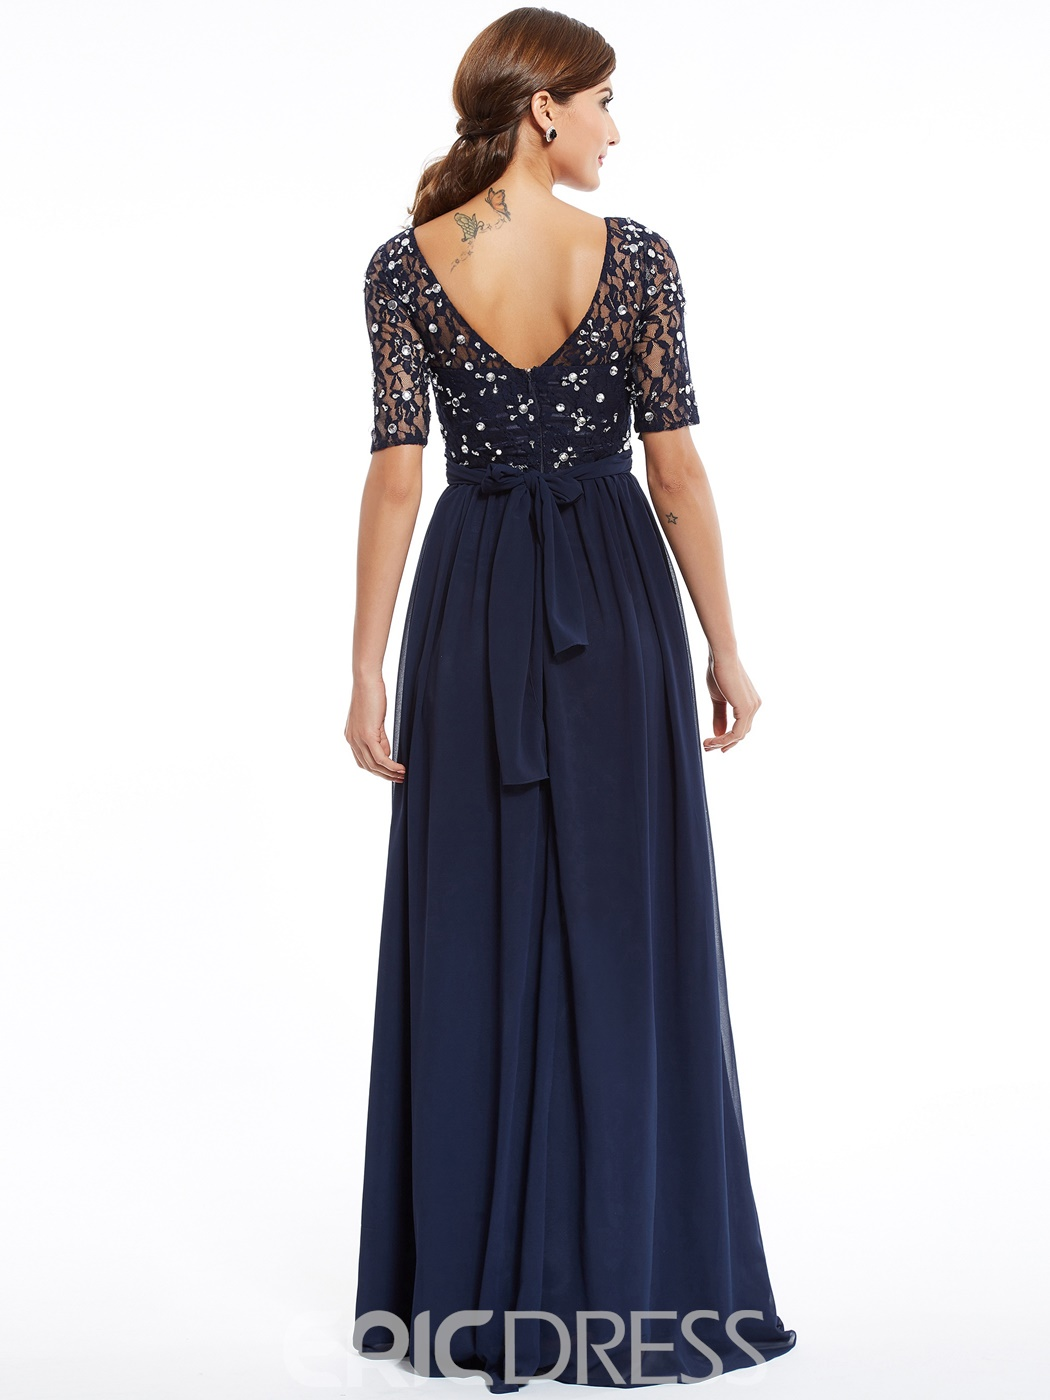 Ericdress A Line Half Sleeves Beaded Evening Dress In Floor Length